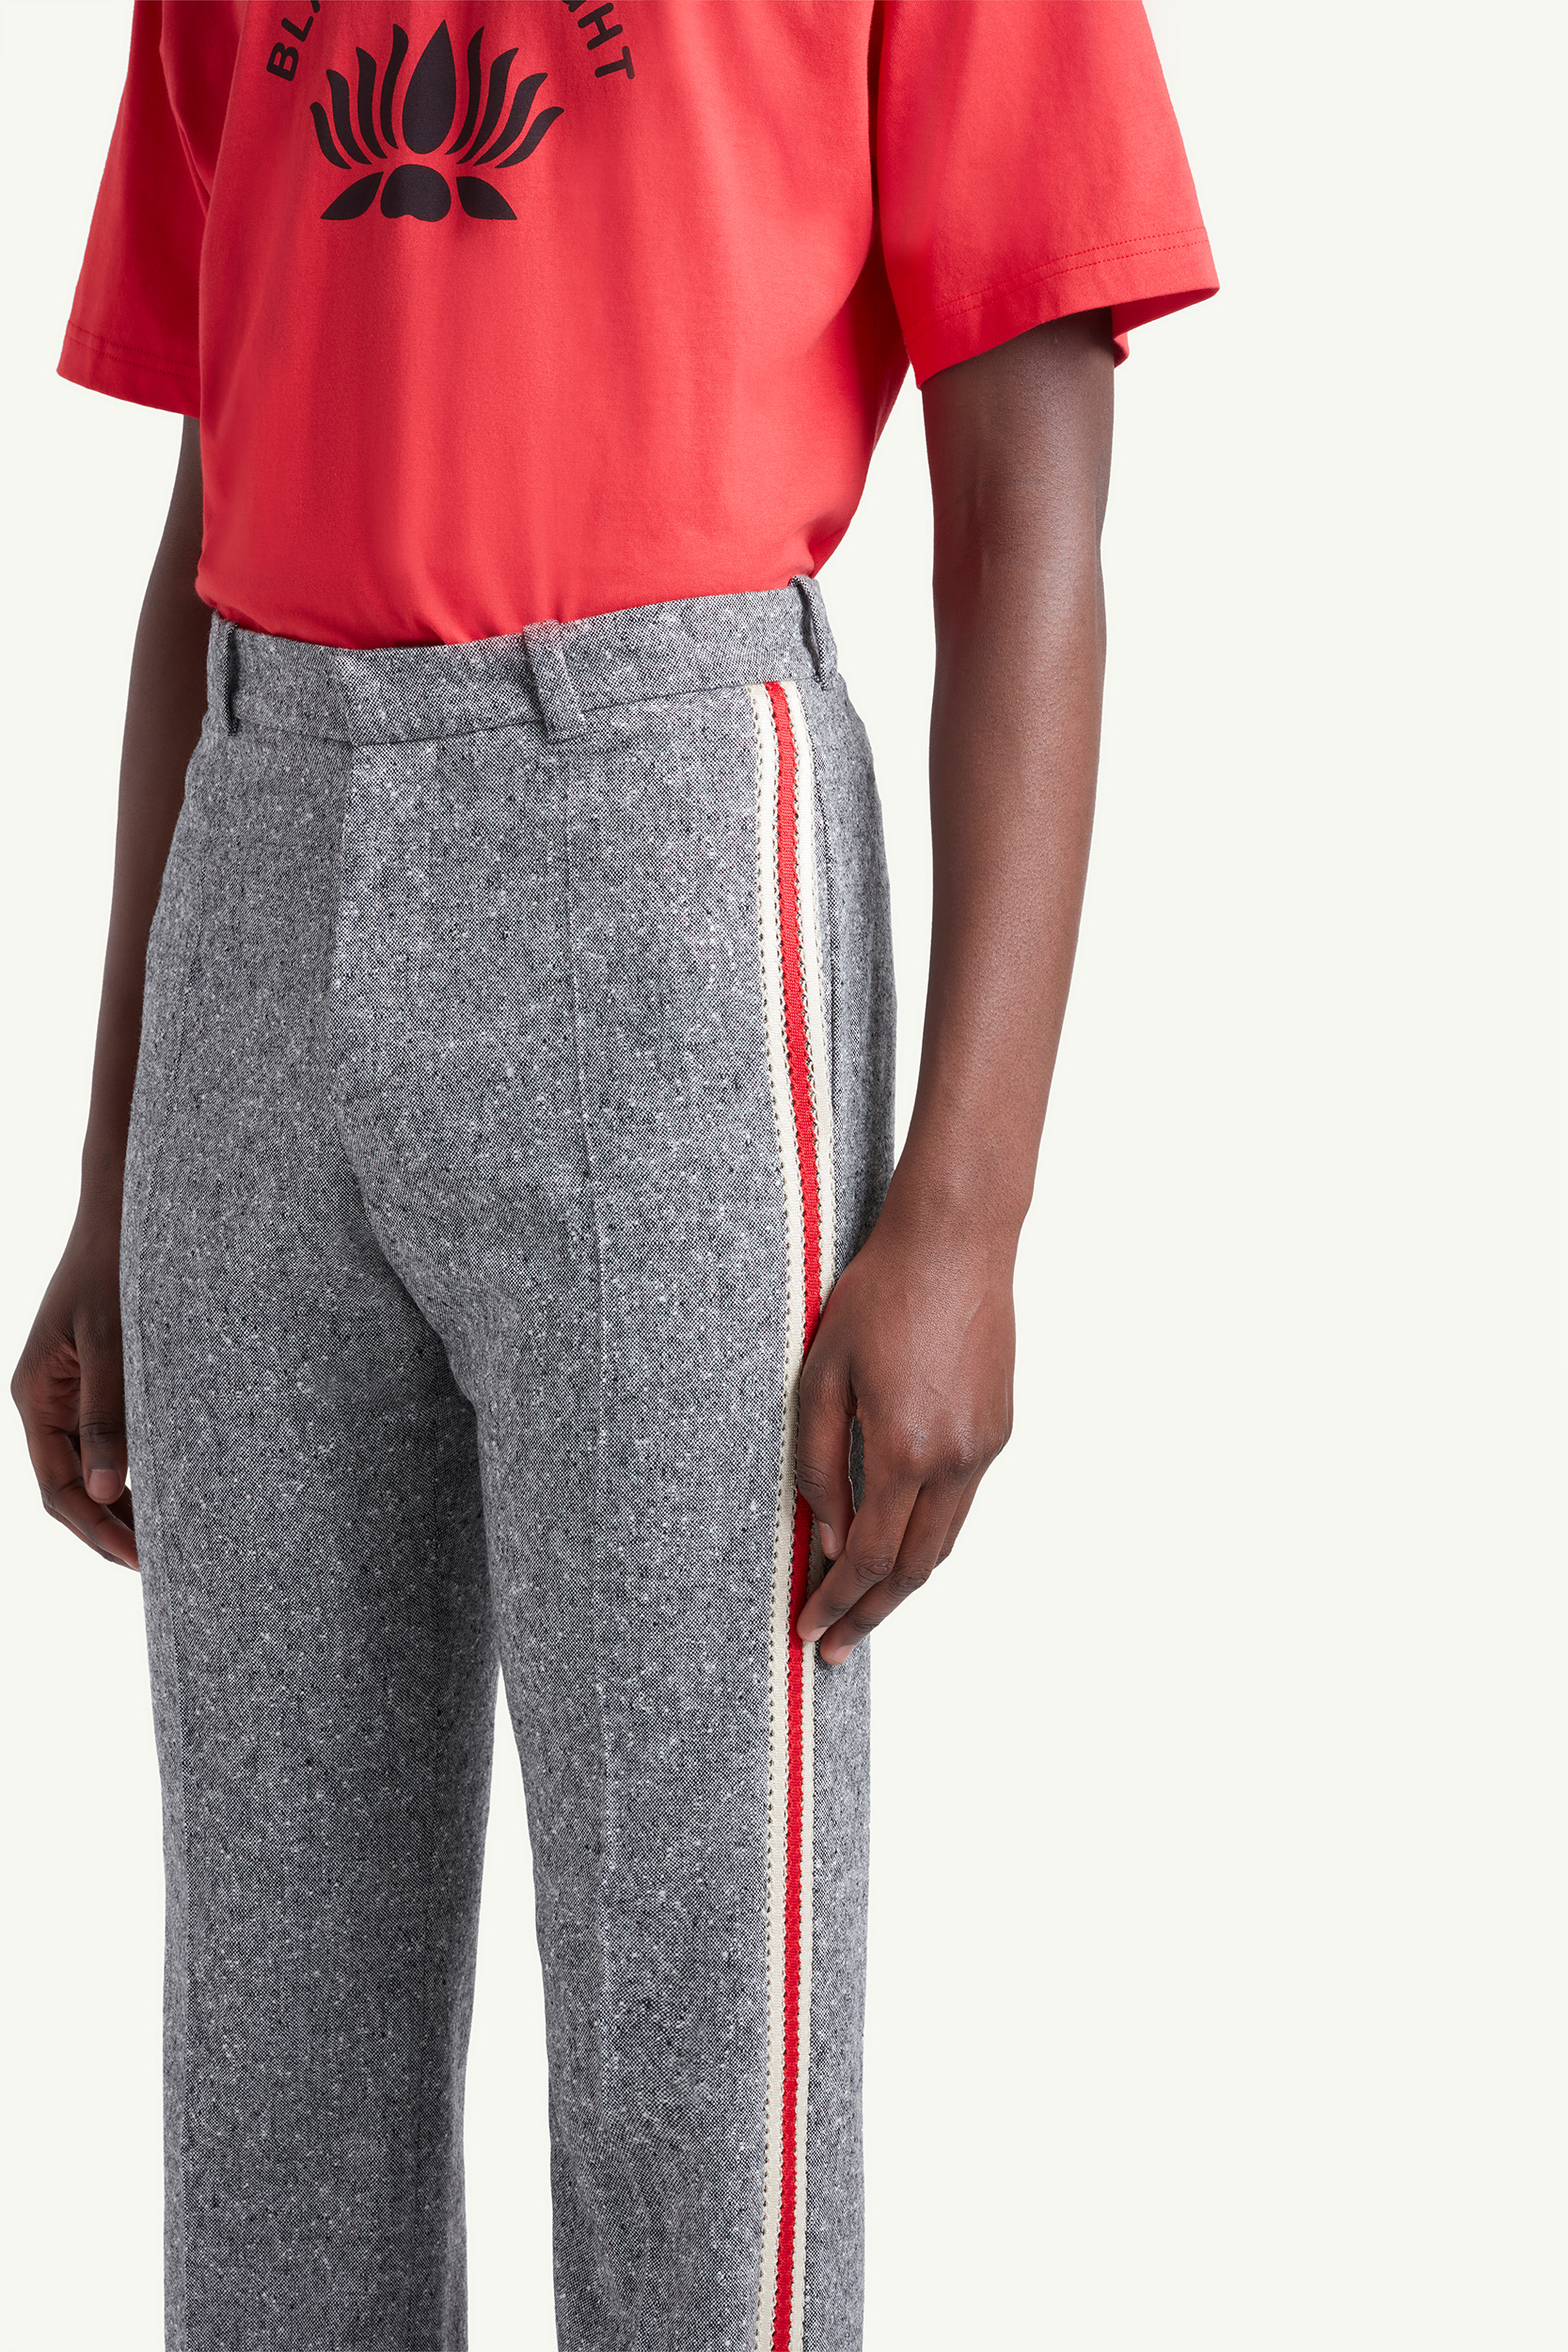 Detail shot of Menswear model wearing Wales Bonner red shirt with grey joggers and white trainers | LRP